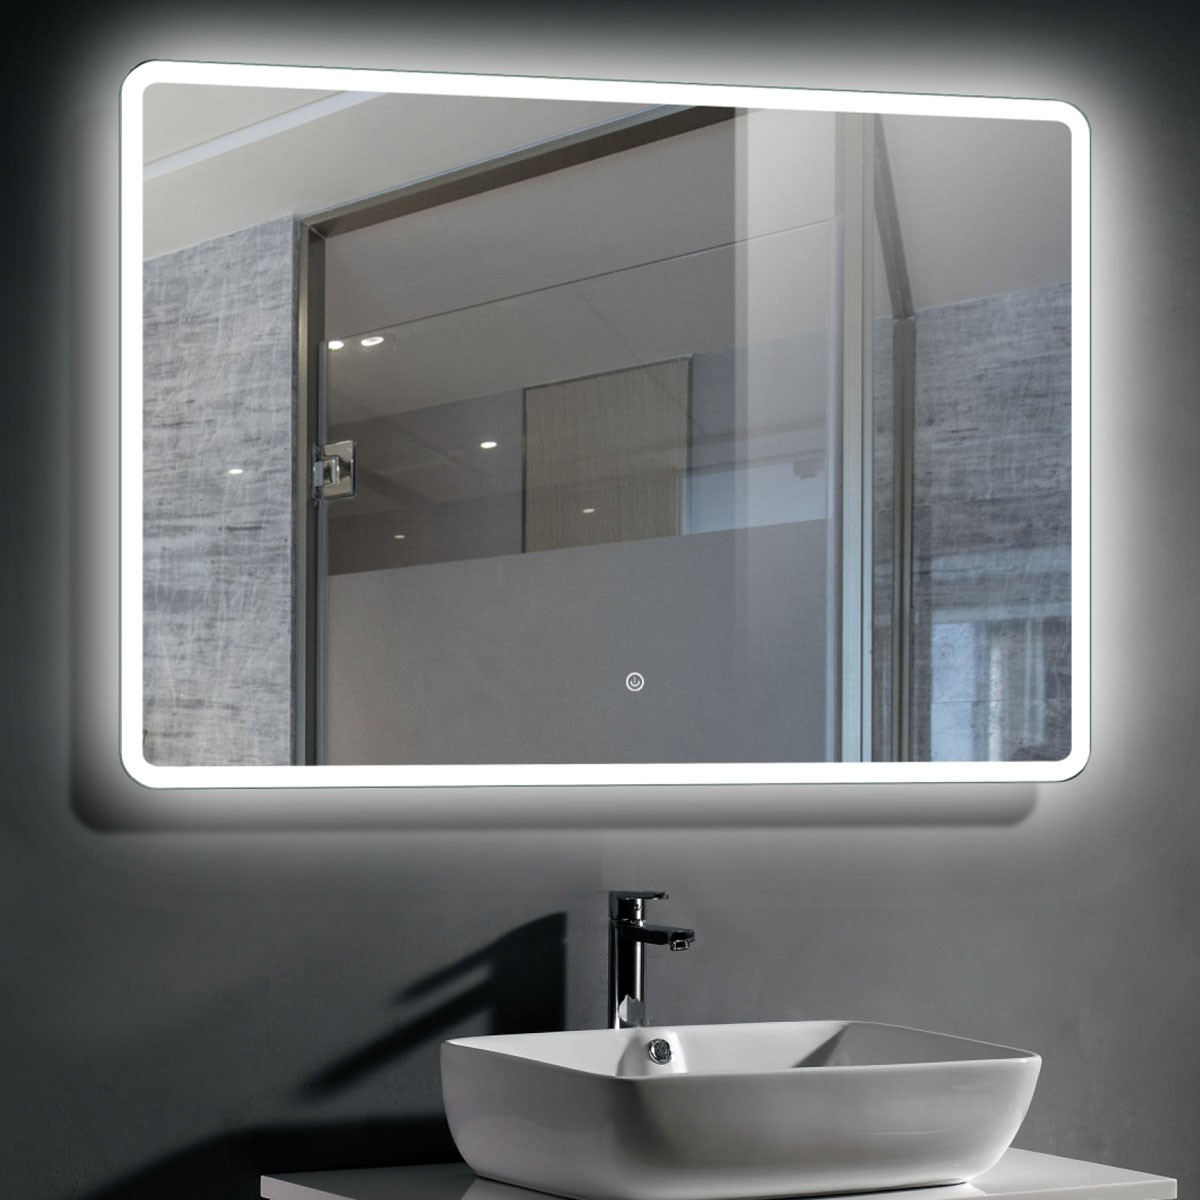 40 x 28 In Horizontal LED Bathroom Mirror with Touch Button (DK-CK206)